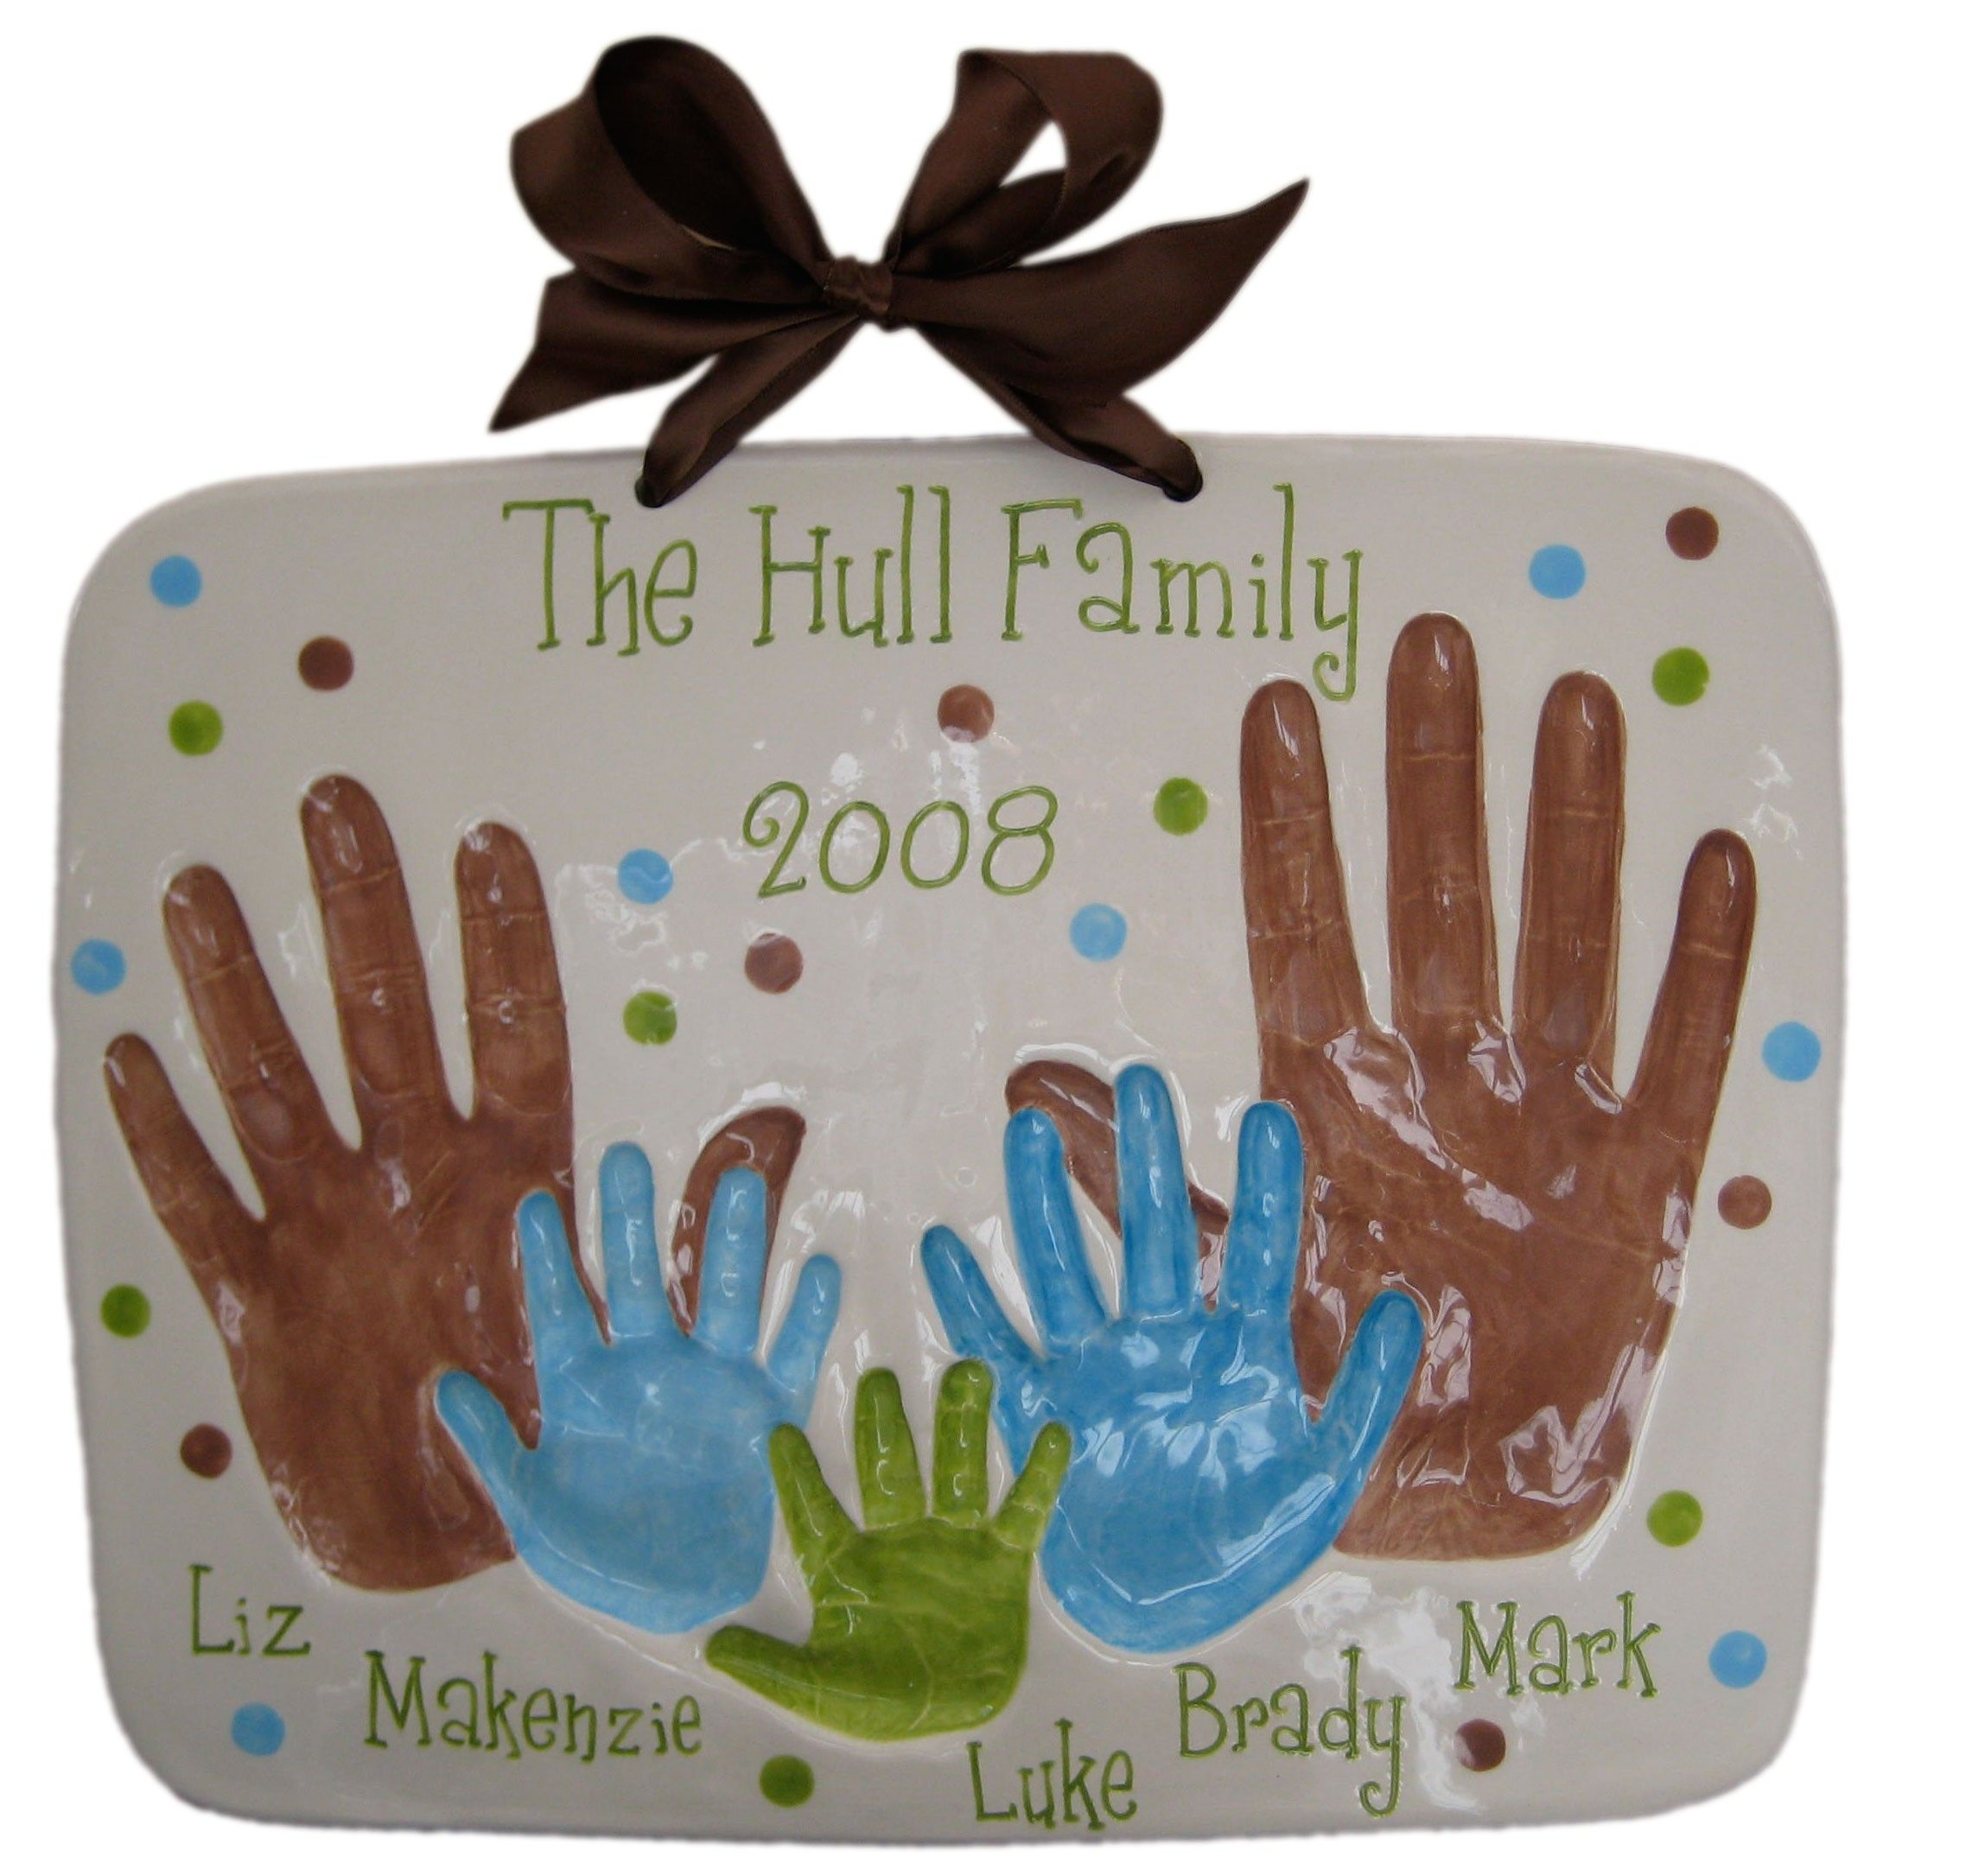 Family Handprint Plaque The Linked Site Will Let You Order A Kit A Basic Salt Dough Recipe And Some Pai Handprint Crafts Family Crafts Footprint Crafts